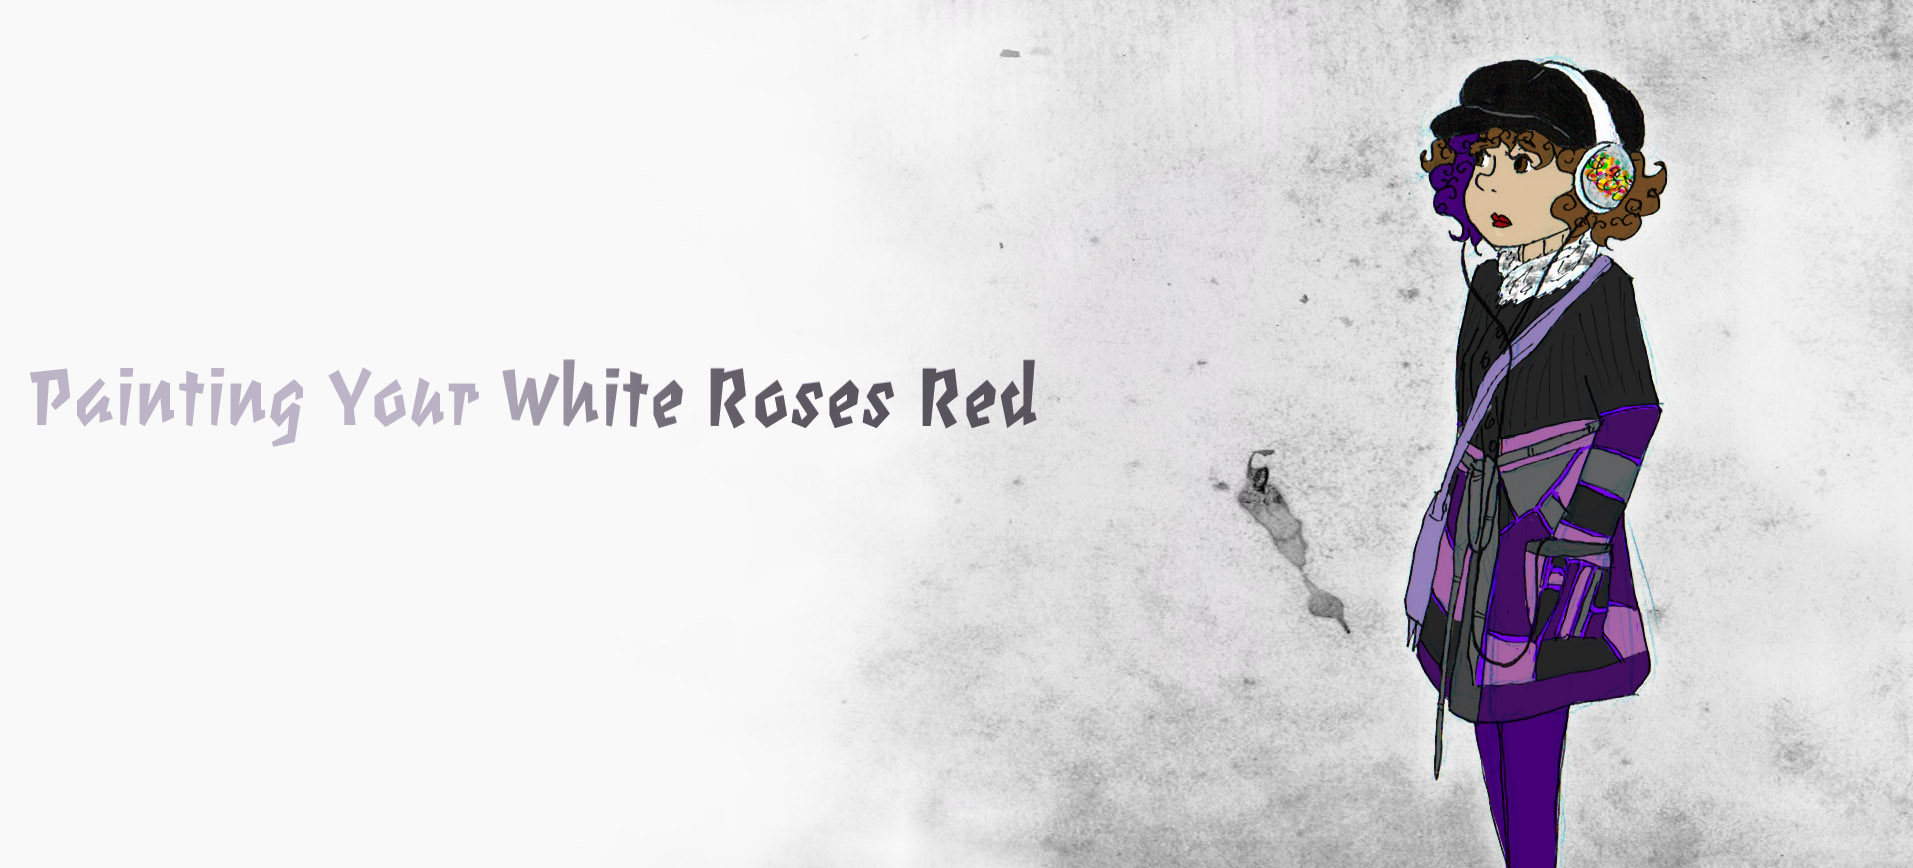 Painting Your White Roses Red